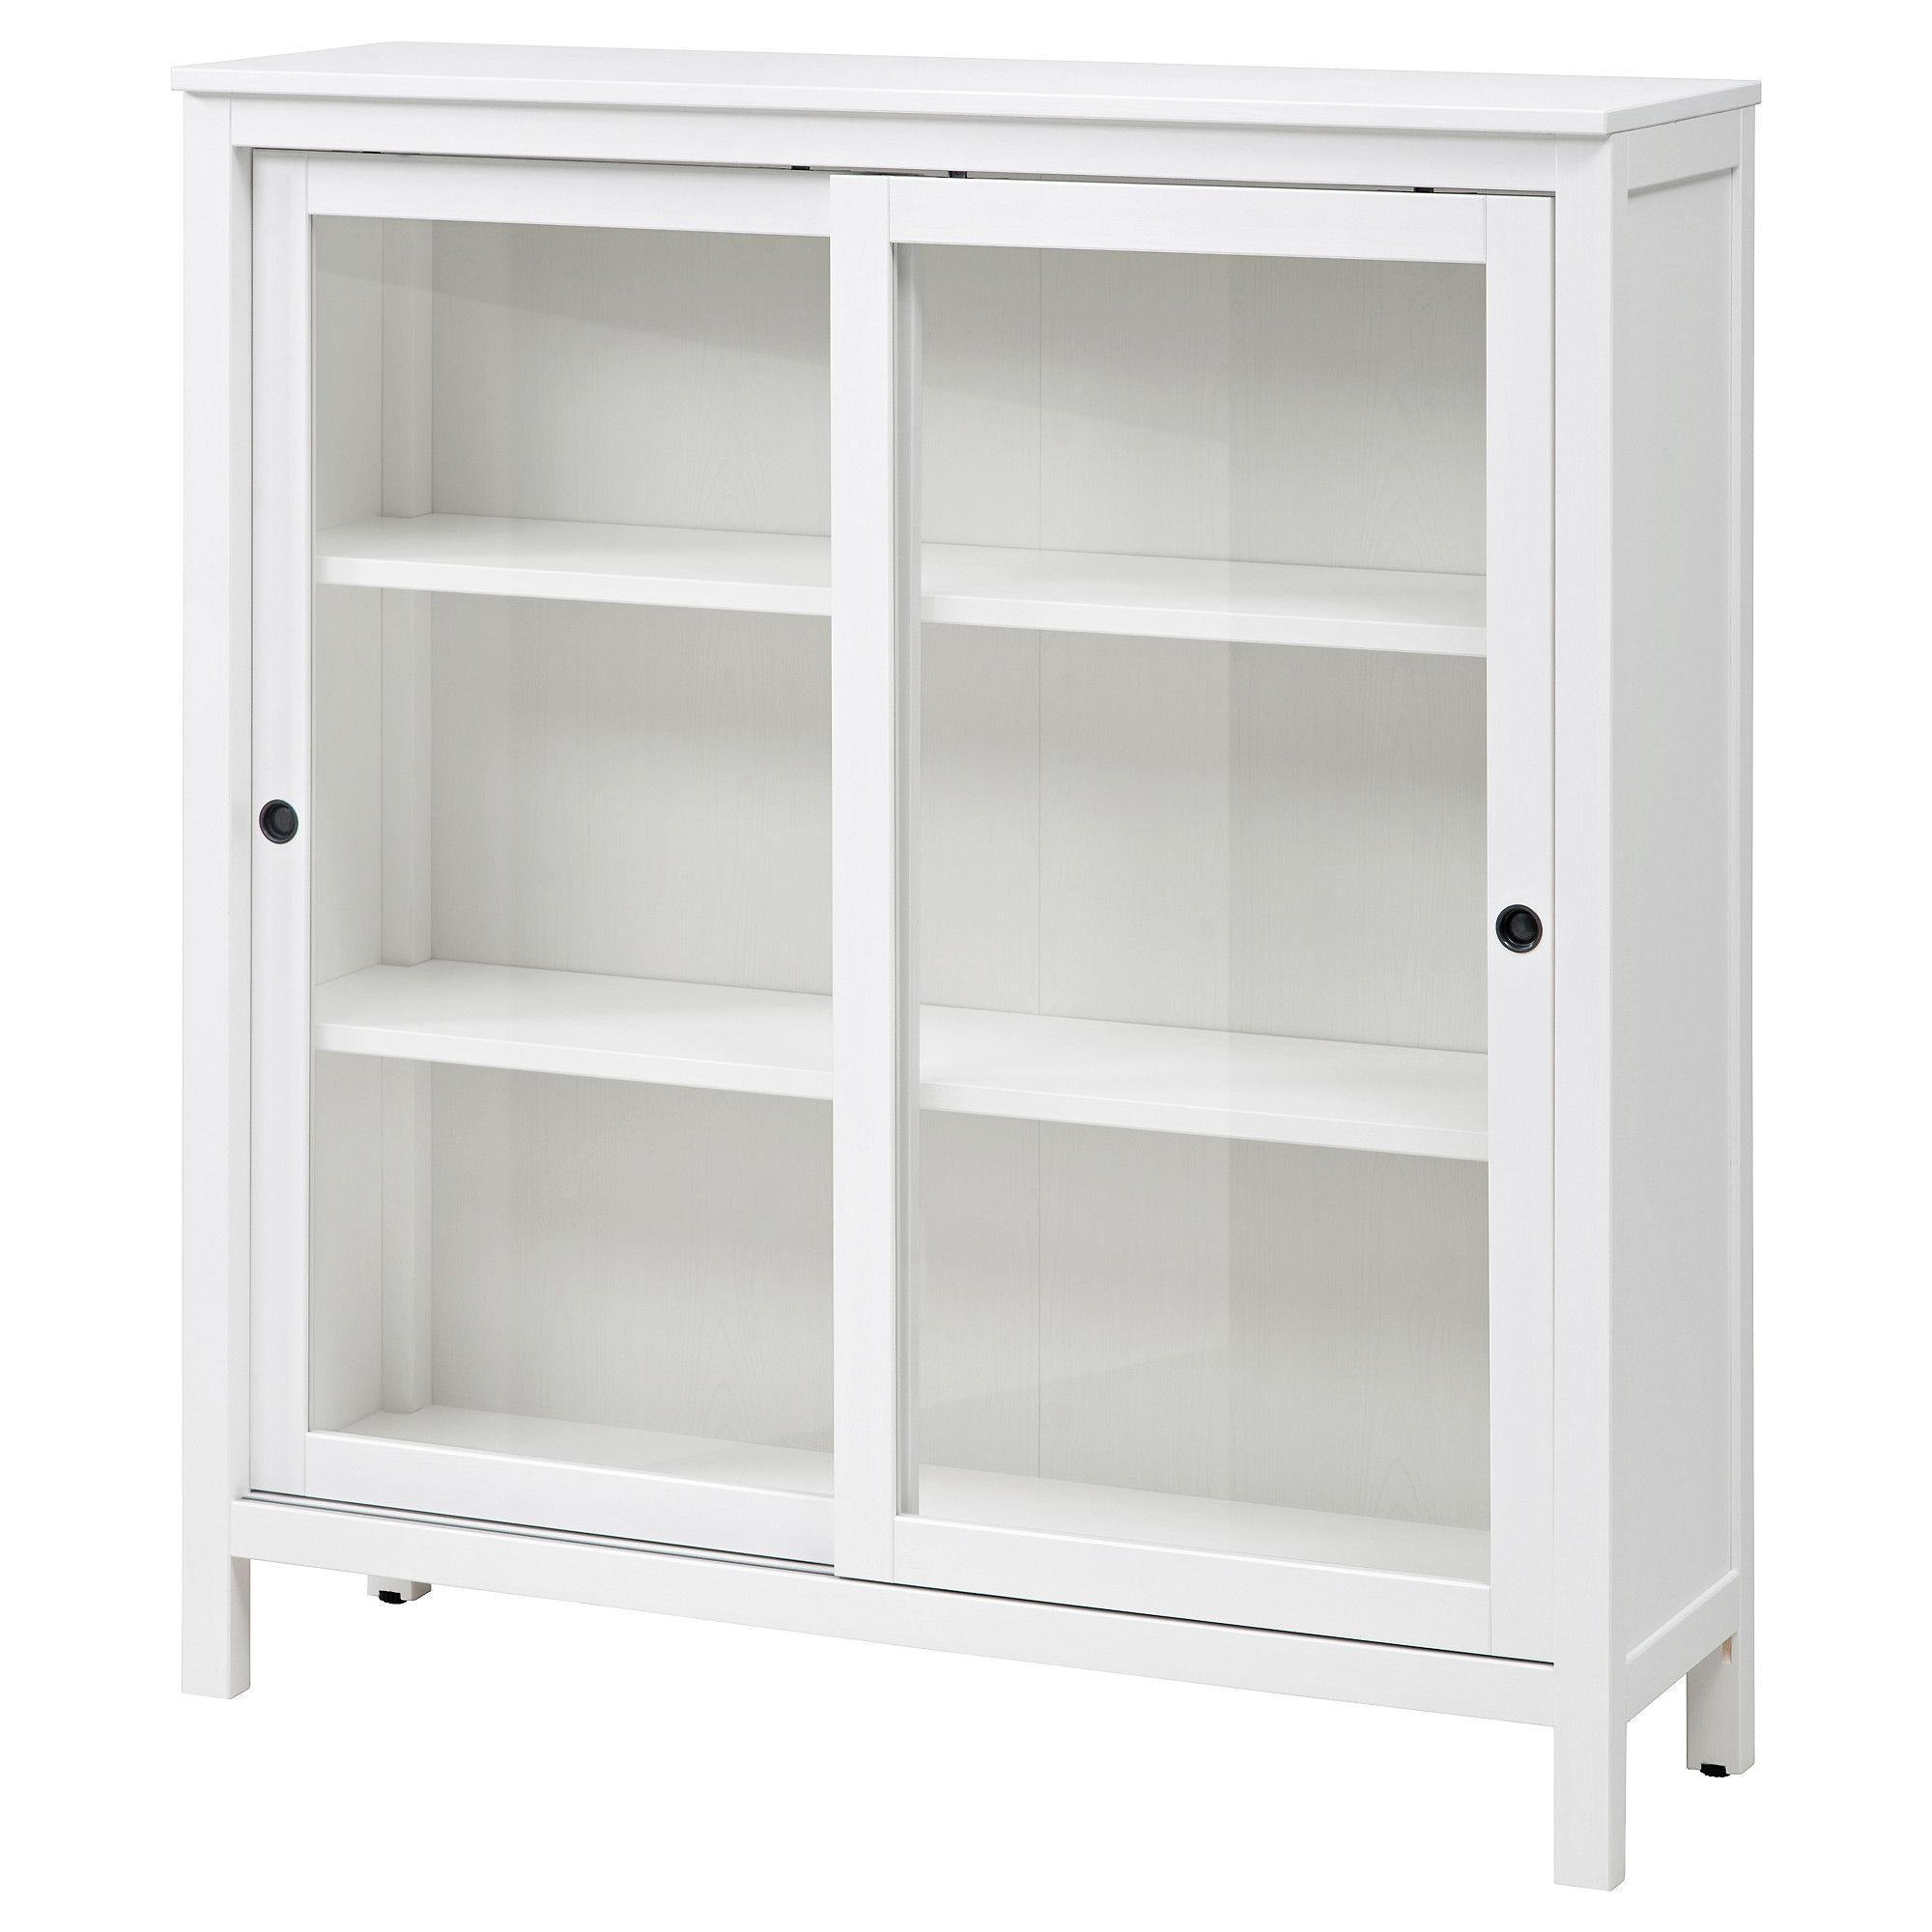 art en bookcase cabinets sideboards space doors opened with ikea when up take gb cabinet white bookcases not sliding furniture storage hemnes any do door glass stain products cm